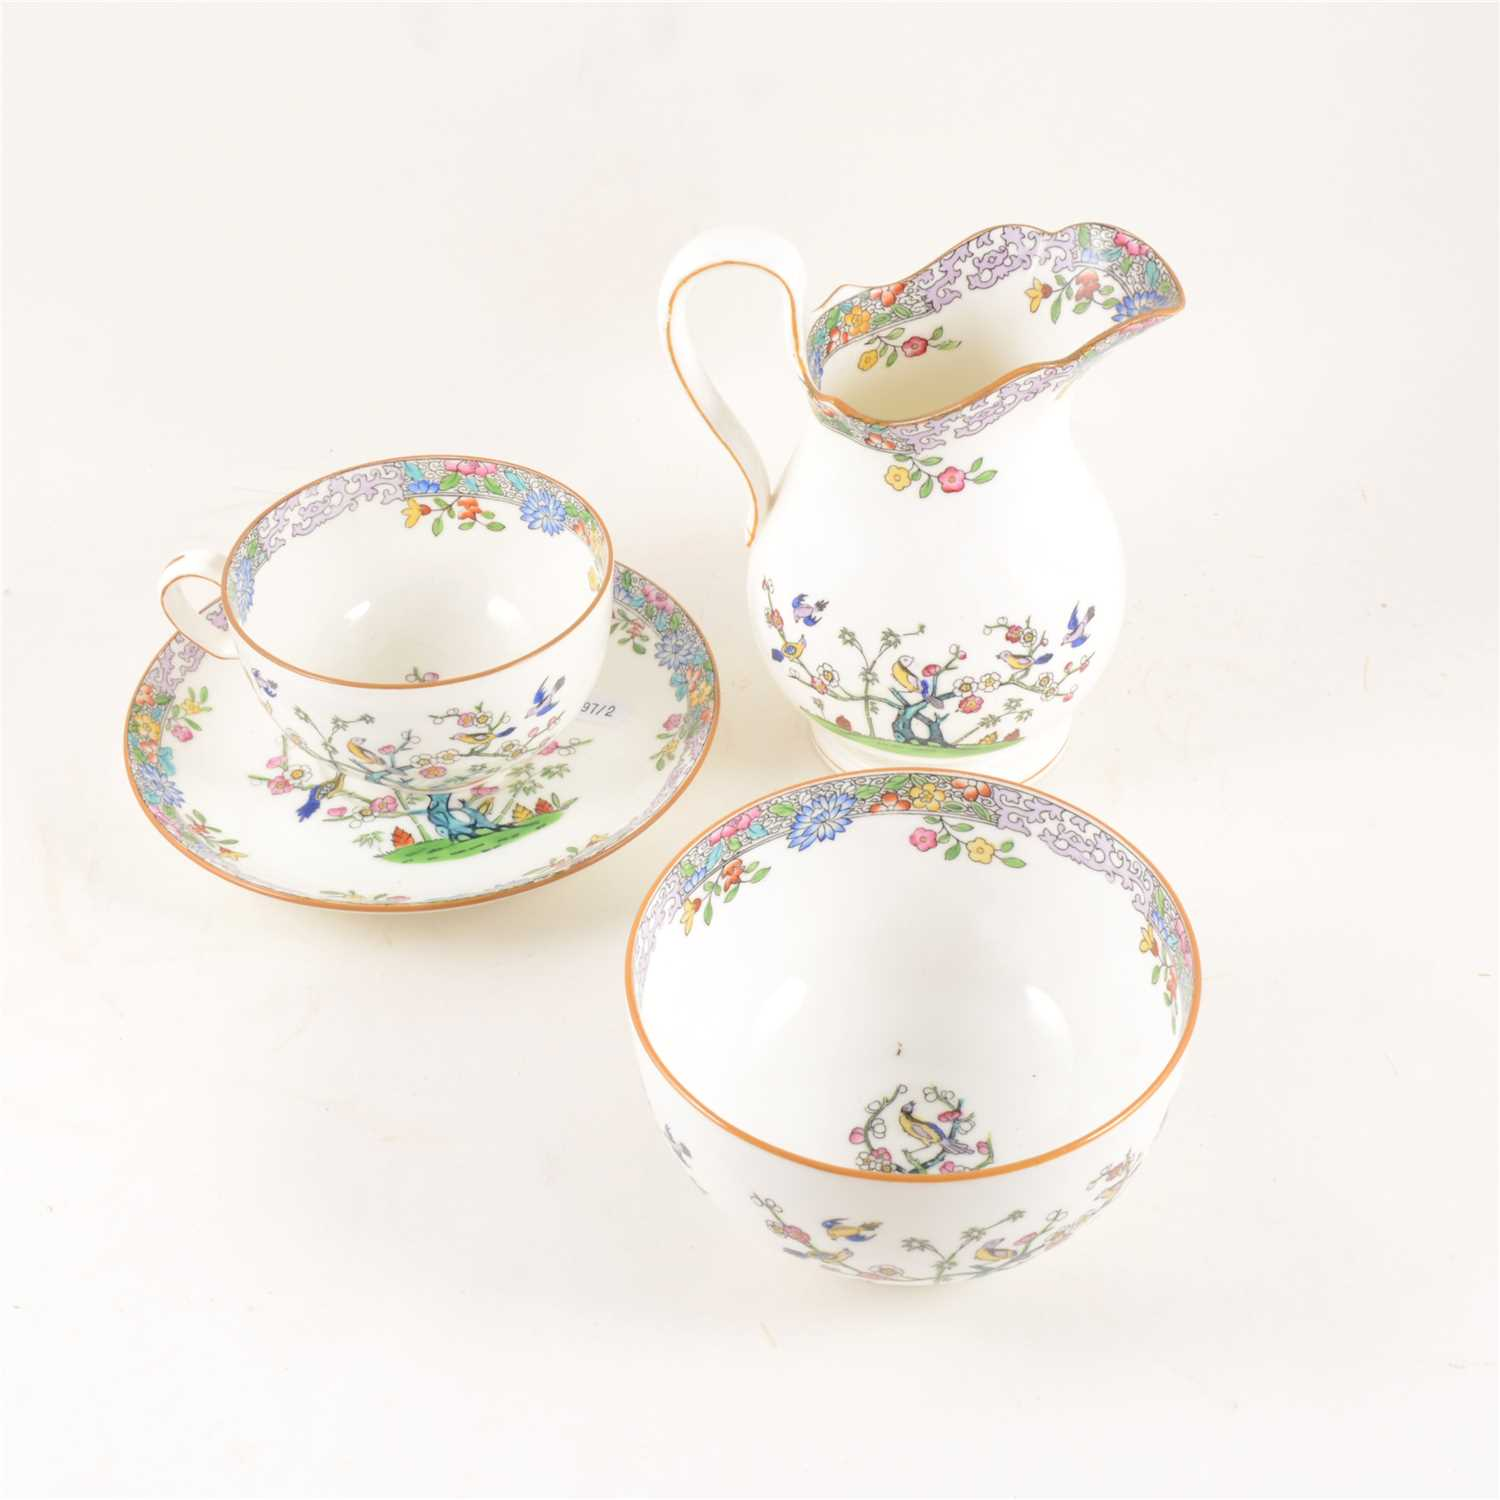 Lot 88-Minton bone china tea set, decorated with songbirds and blossom.